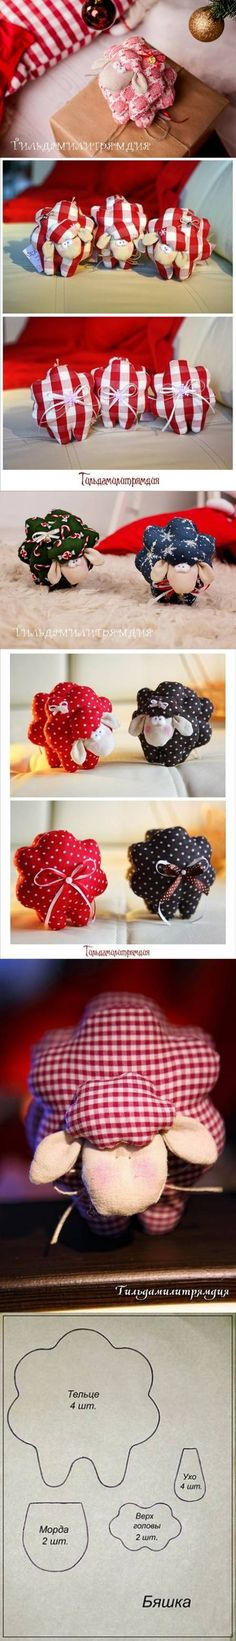 DIY Cute Fabric Lamb DIY Projects | UsefulDIY.com Follow Us on Facebook ==> http://www.facebook.com/UsefulDiy